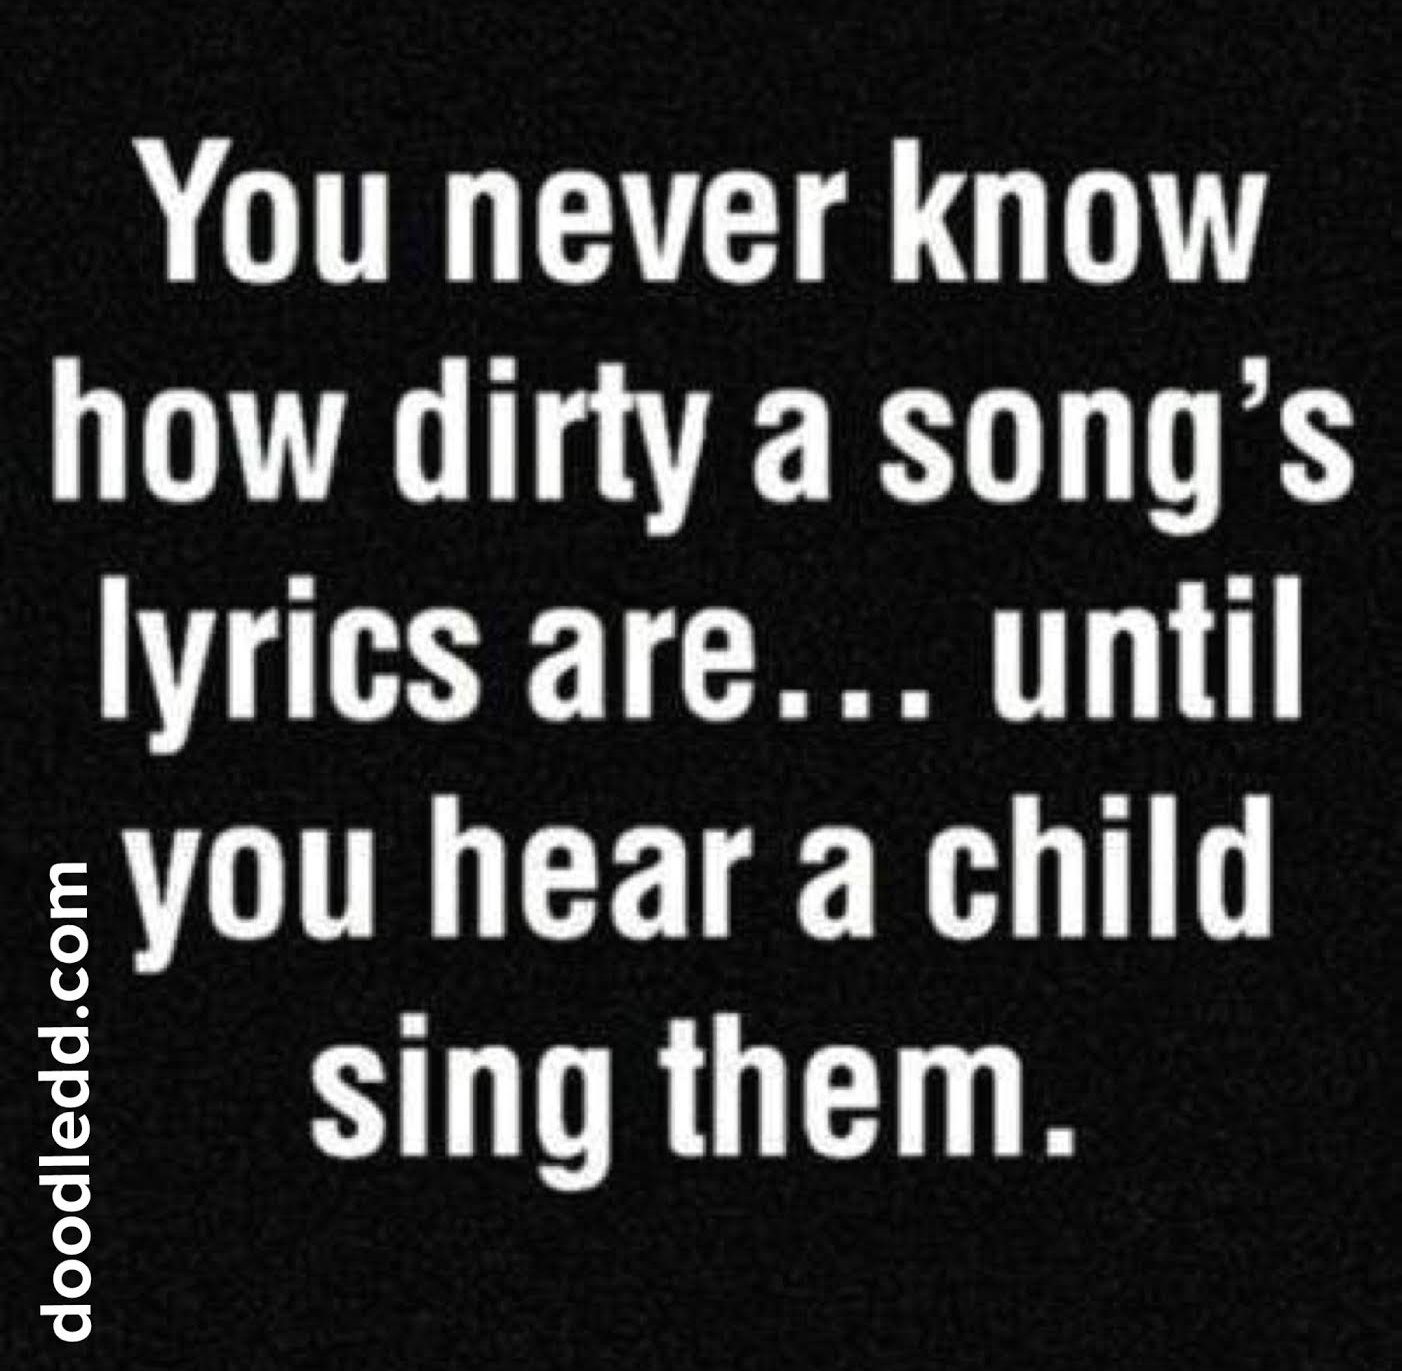 SongLyrics - You never know how dirty a song's lyrics are...until you hear a child sing them.